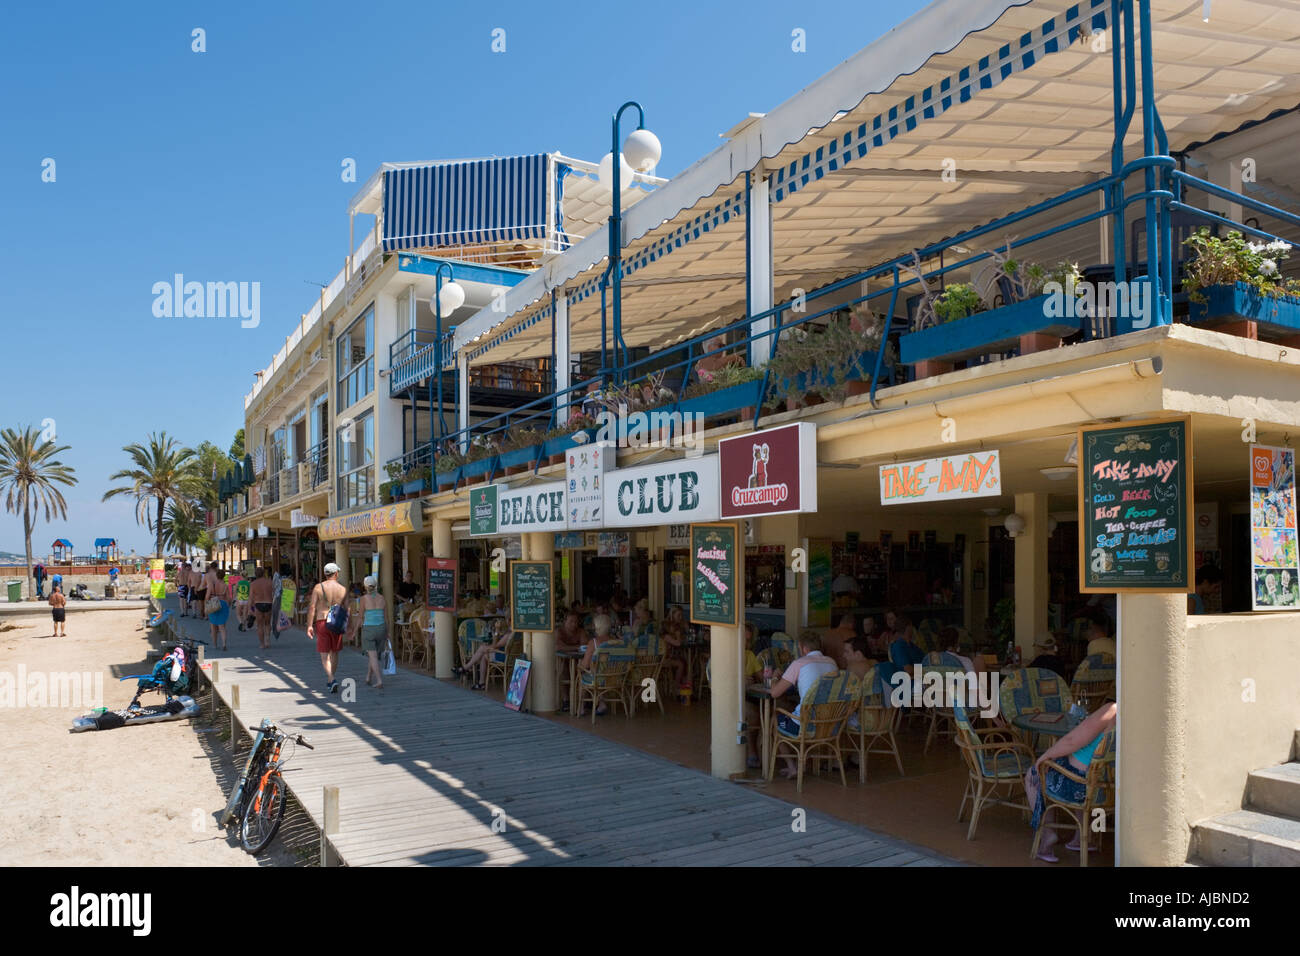 Beachfront Bars and Restaurants, Palma Nova, Bay of Palma, Mallorca, Balearic Islands, Spain - Stock Image